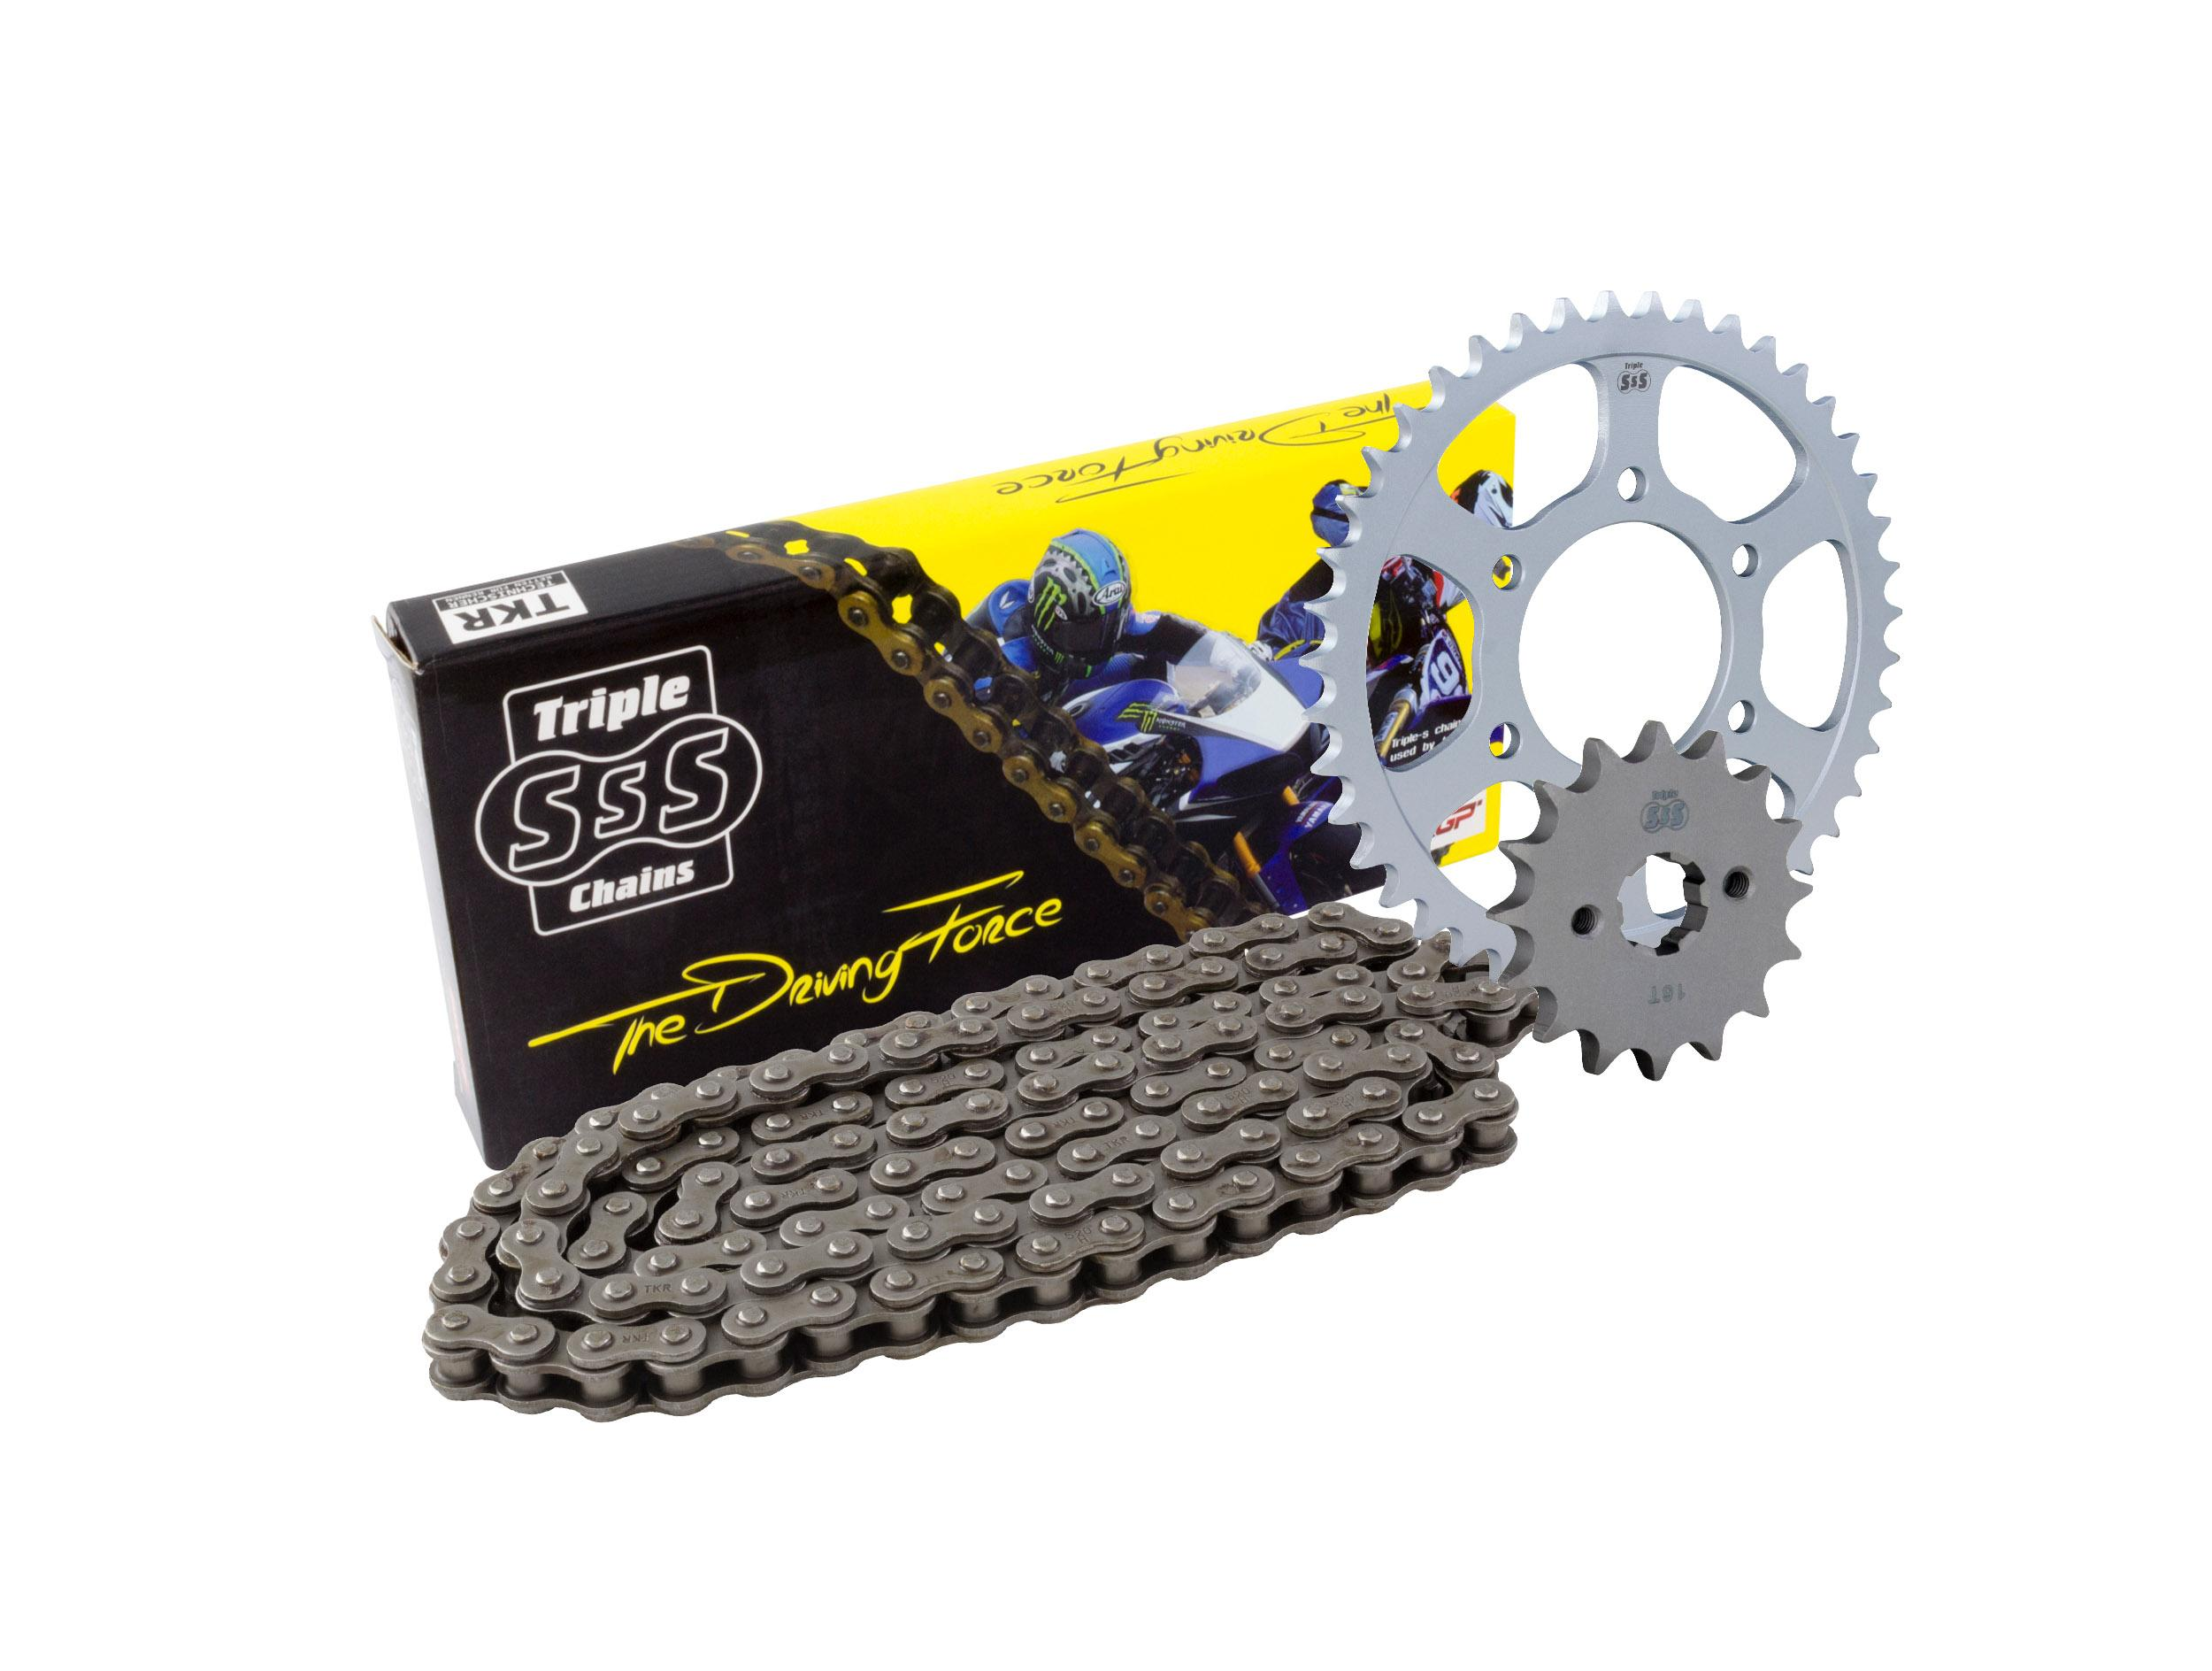 Honda NSR125 R-R/S/V 93-98 Chain & Sprocket Kit: 14T Front, 36T Rear, HD Chain 520H 108Link